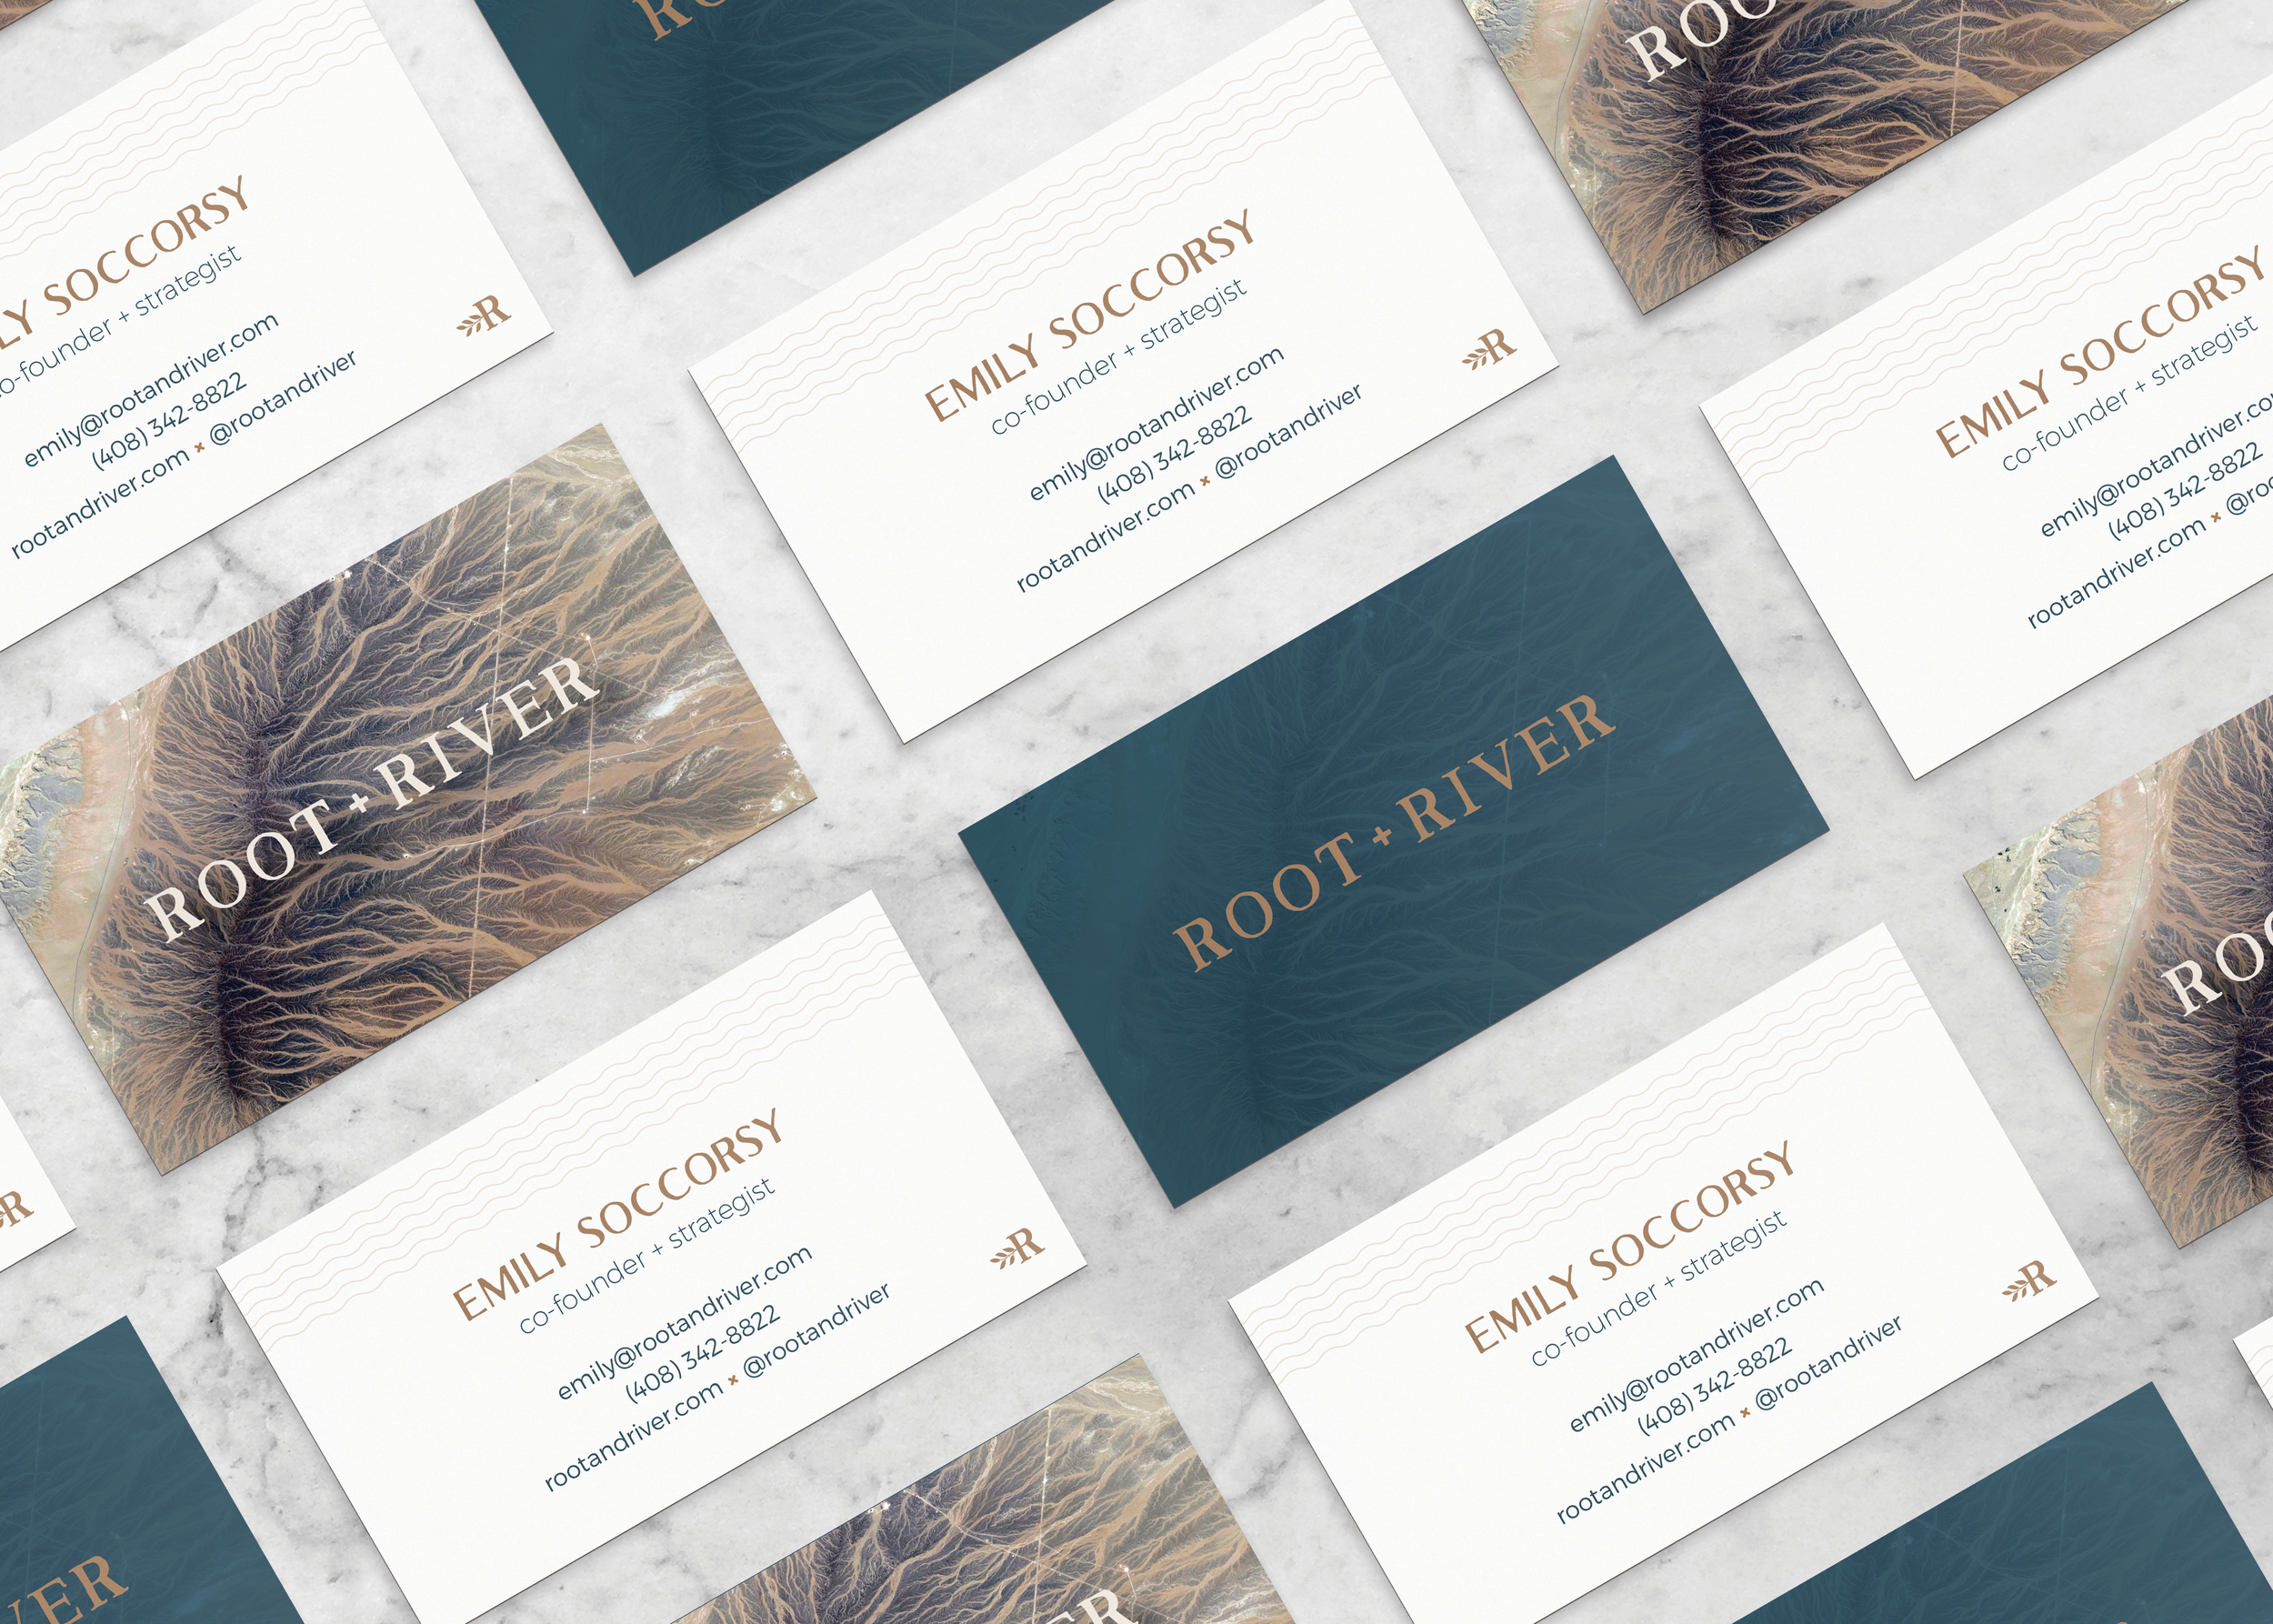 root + river business card designs by Pace Creative Design Studio